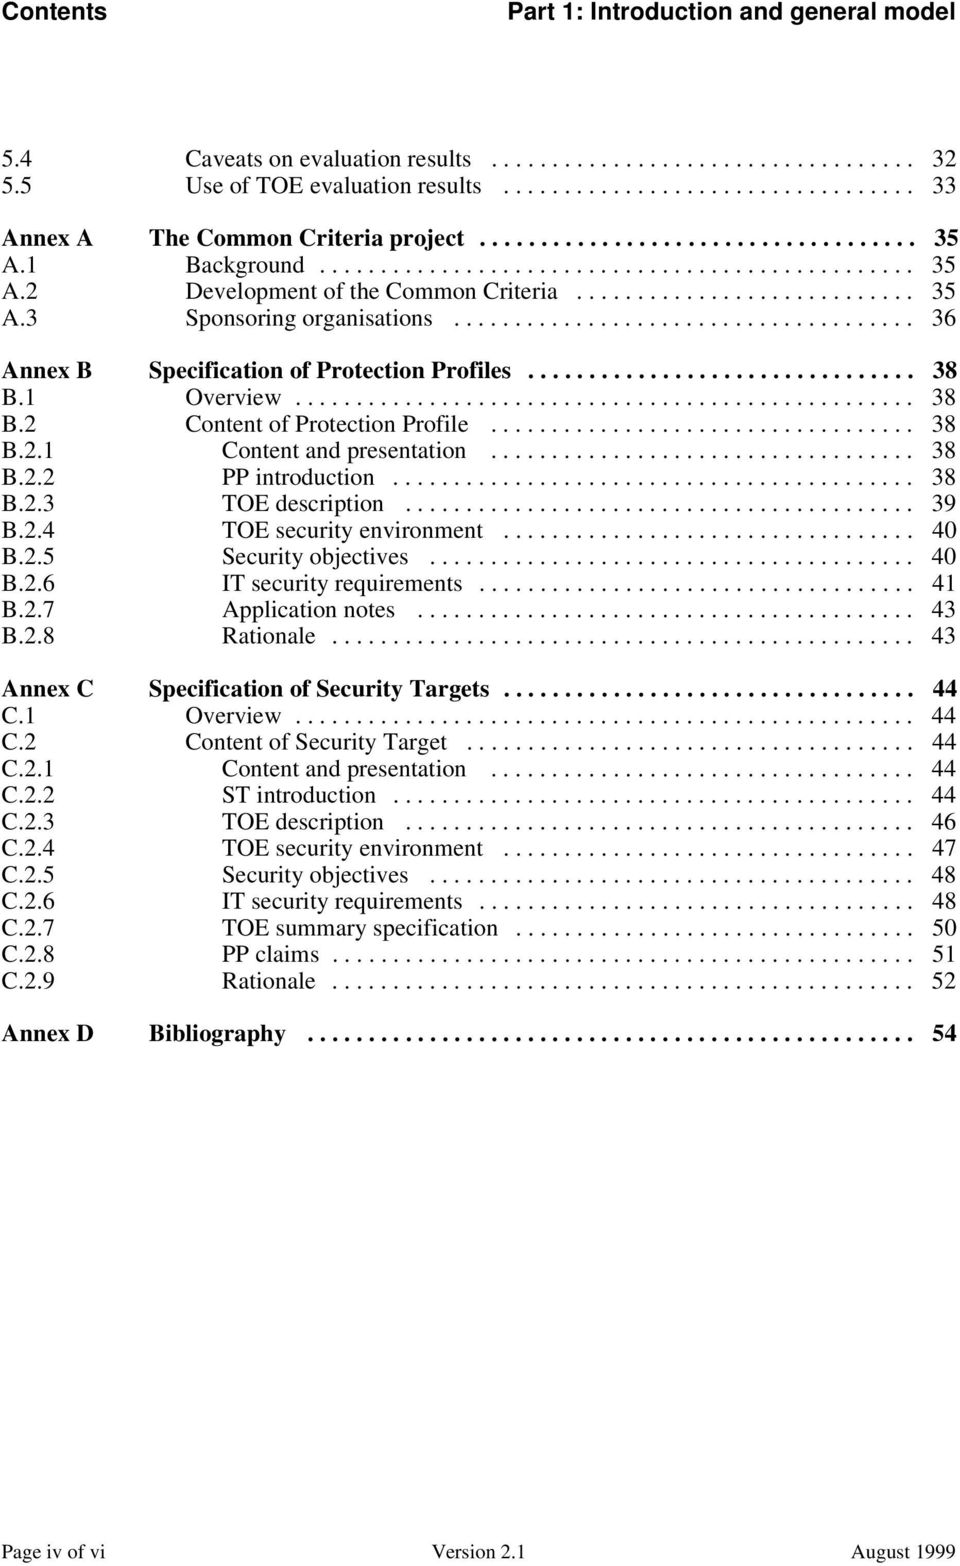 ..................................... 36 Annex B Specification of Protection Profiles................................ 38 B.1 Overview................................................... 38 B.2 Content of Protection Profile.